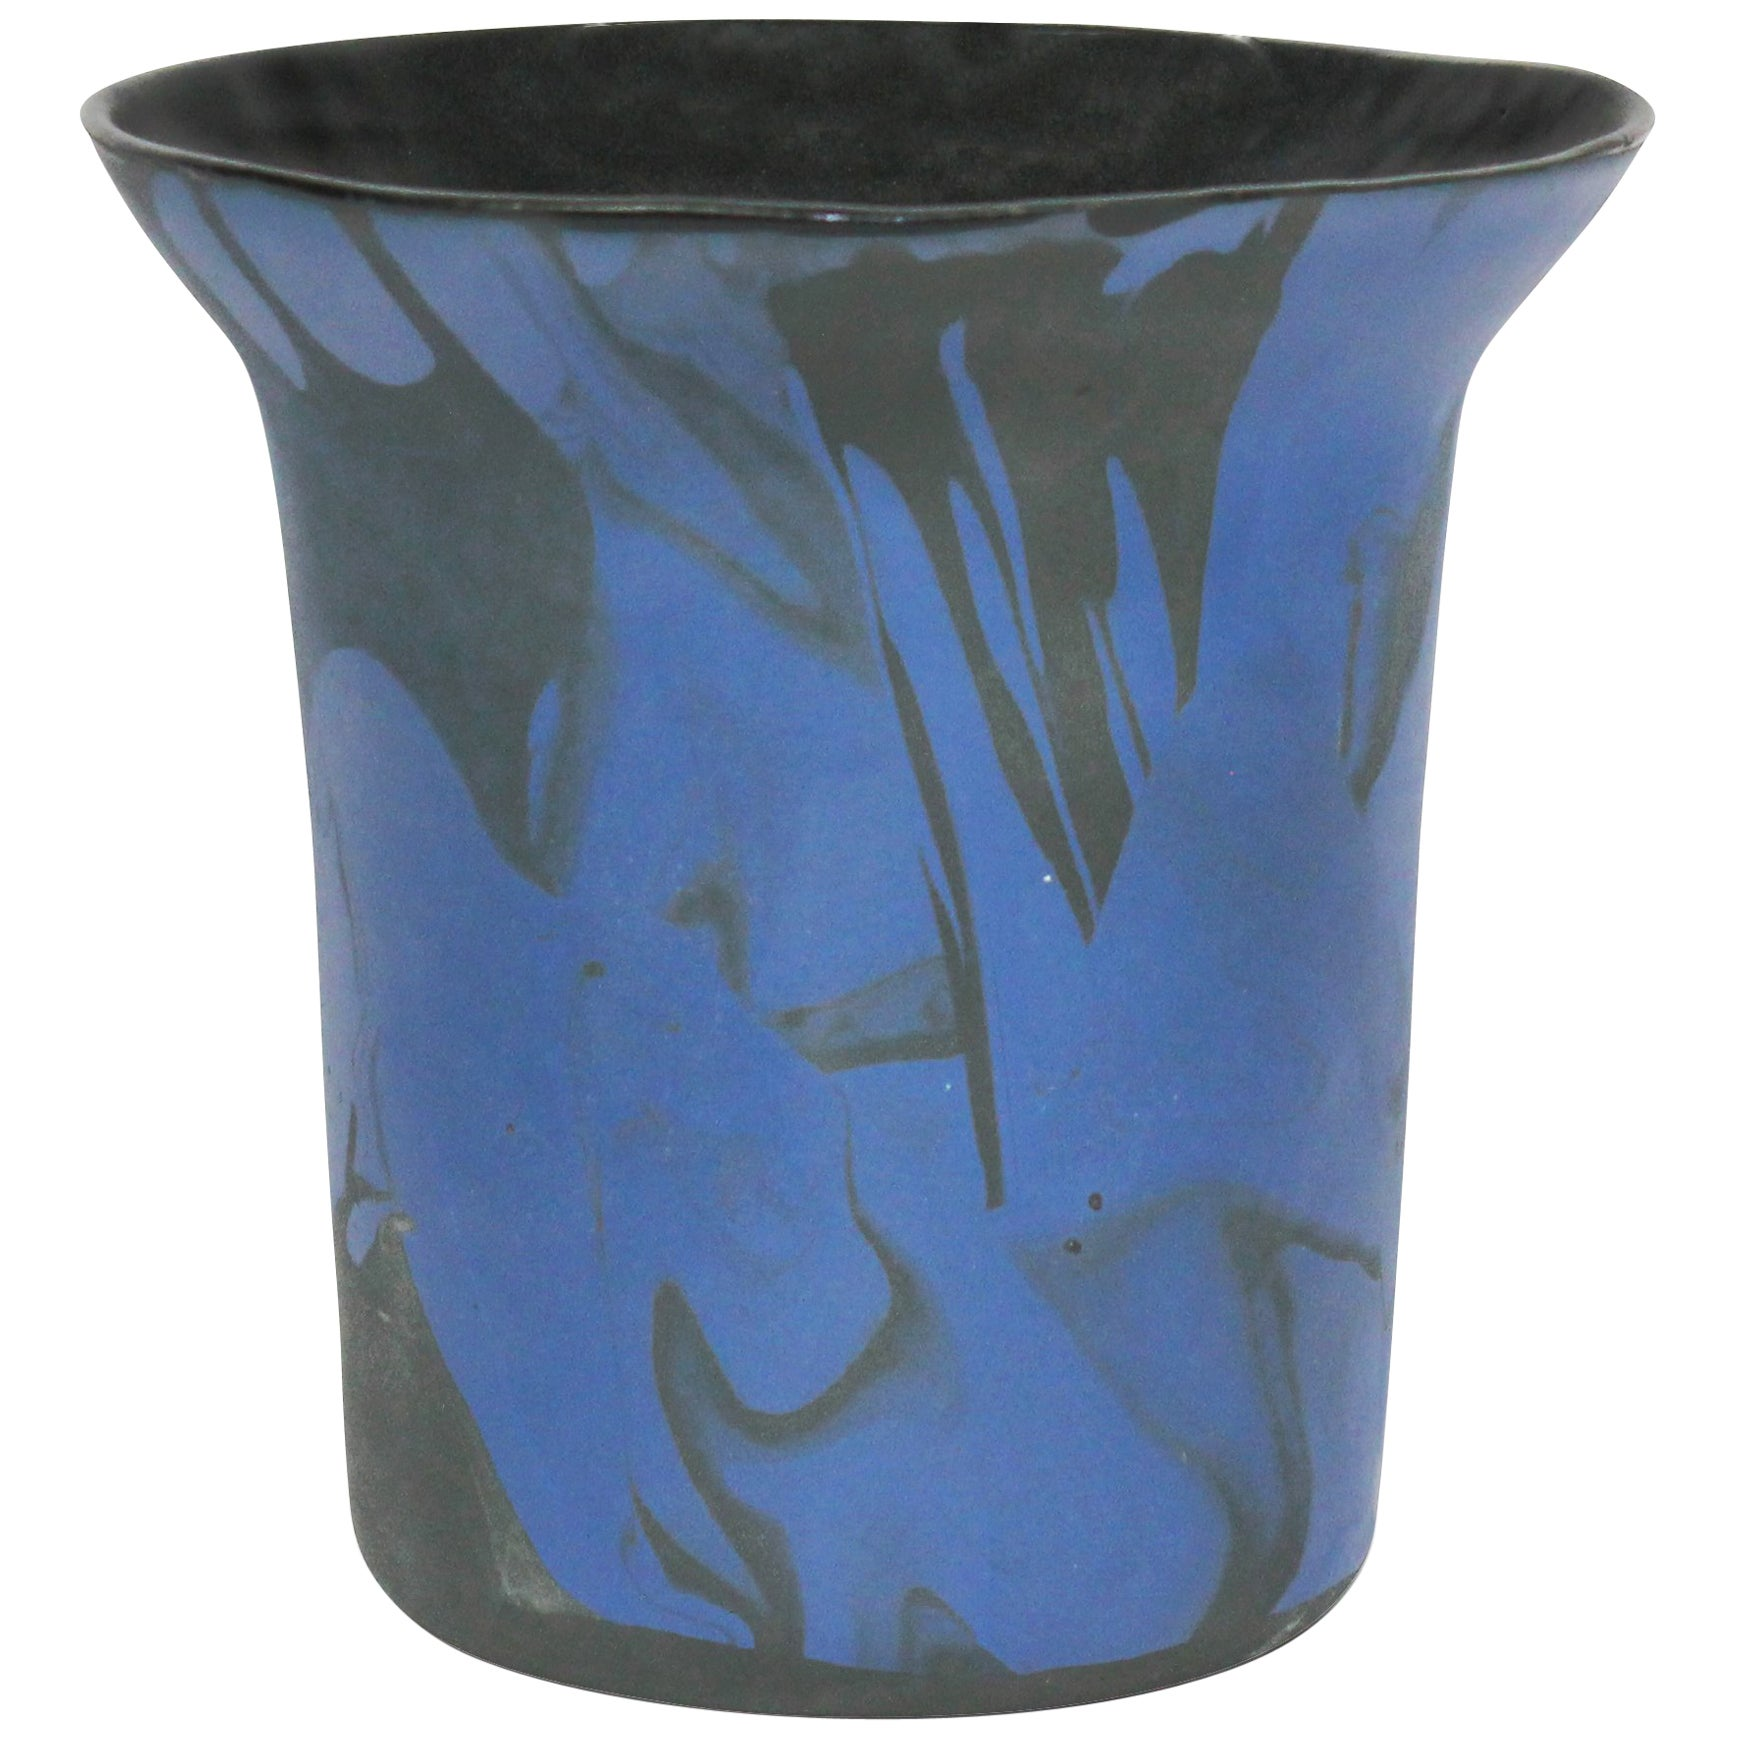 Contemporary Marbled Ceramic Vase Pearlescent Blue and Black, Handmade